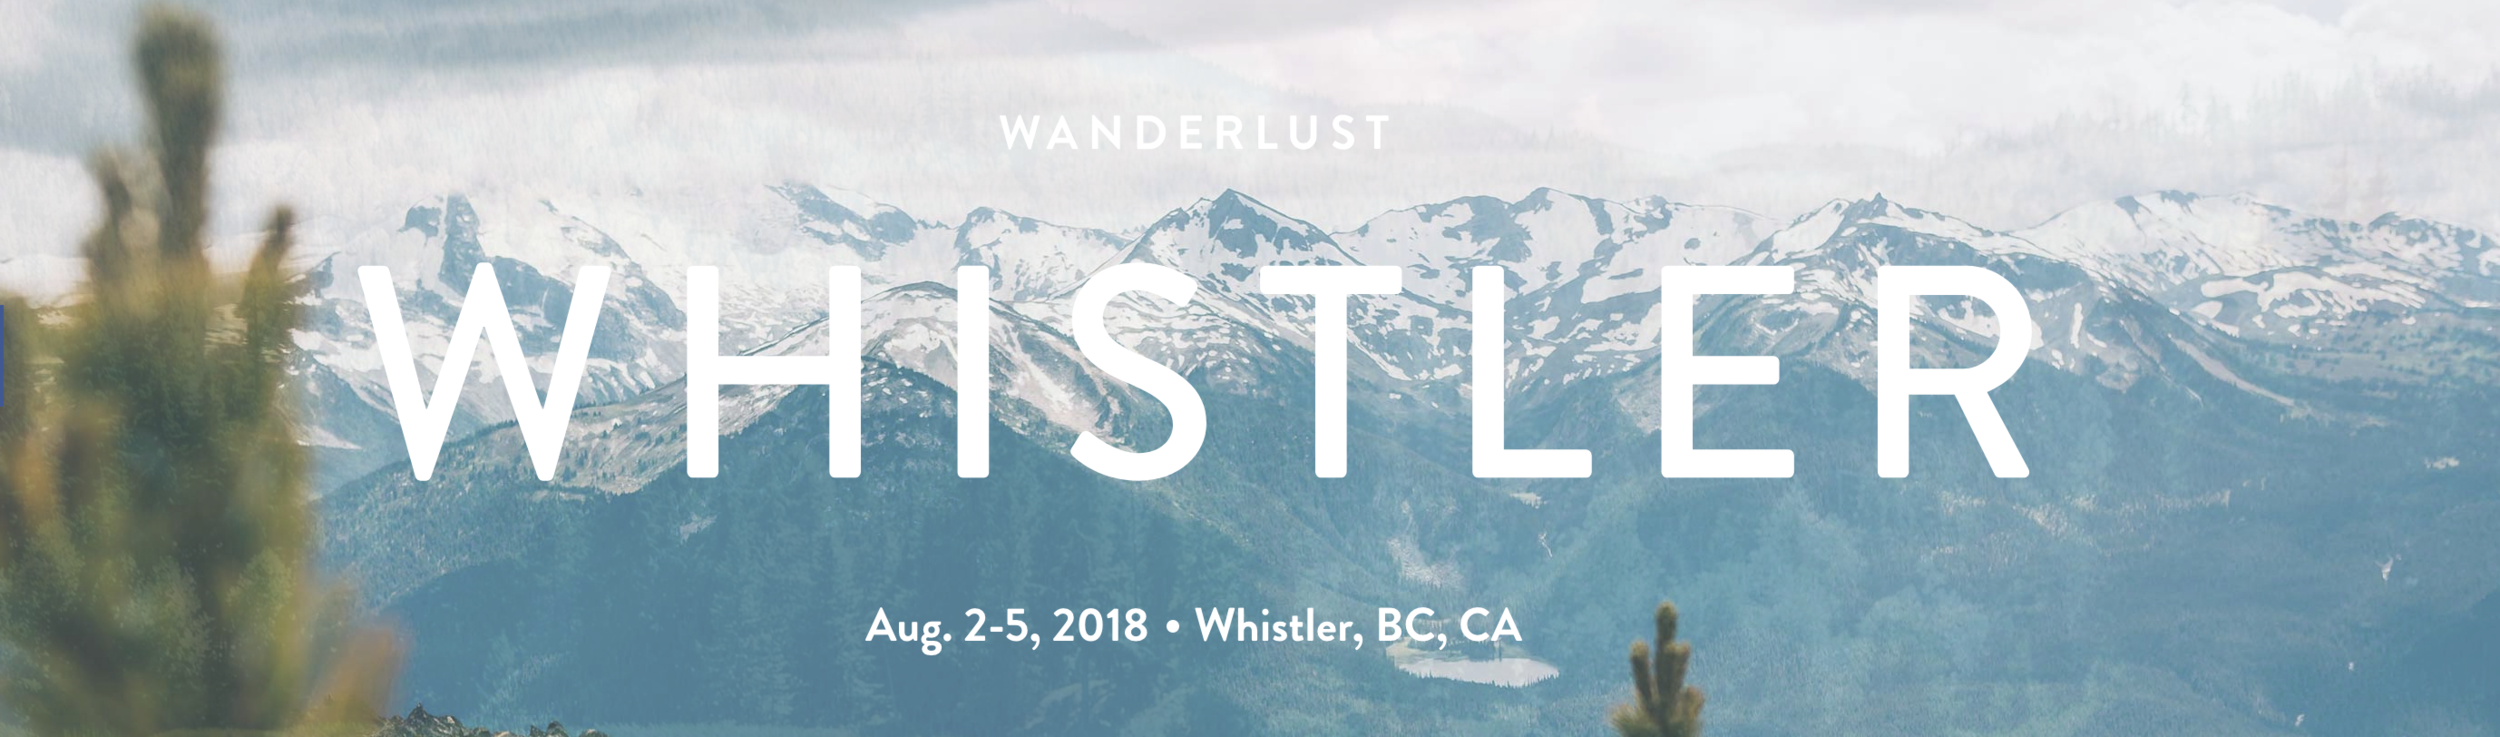 Come by our booth at Wanderlust Whistler or join us for our Talisman-making Workshops! Sandy will be offering in-person astrology readings as well - see you soon ;)